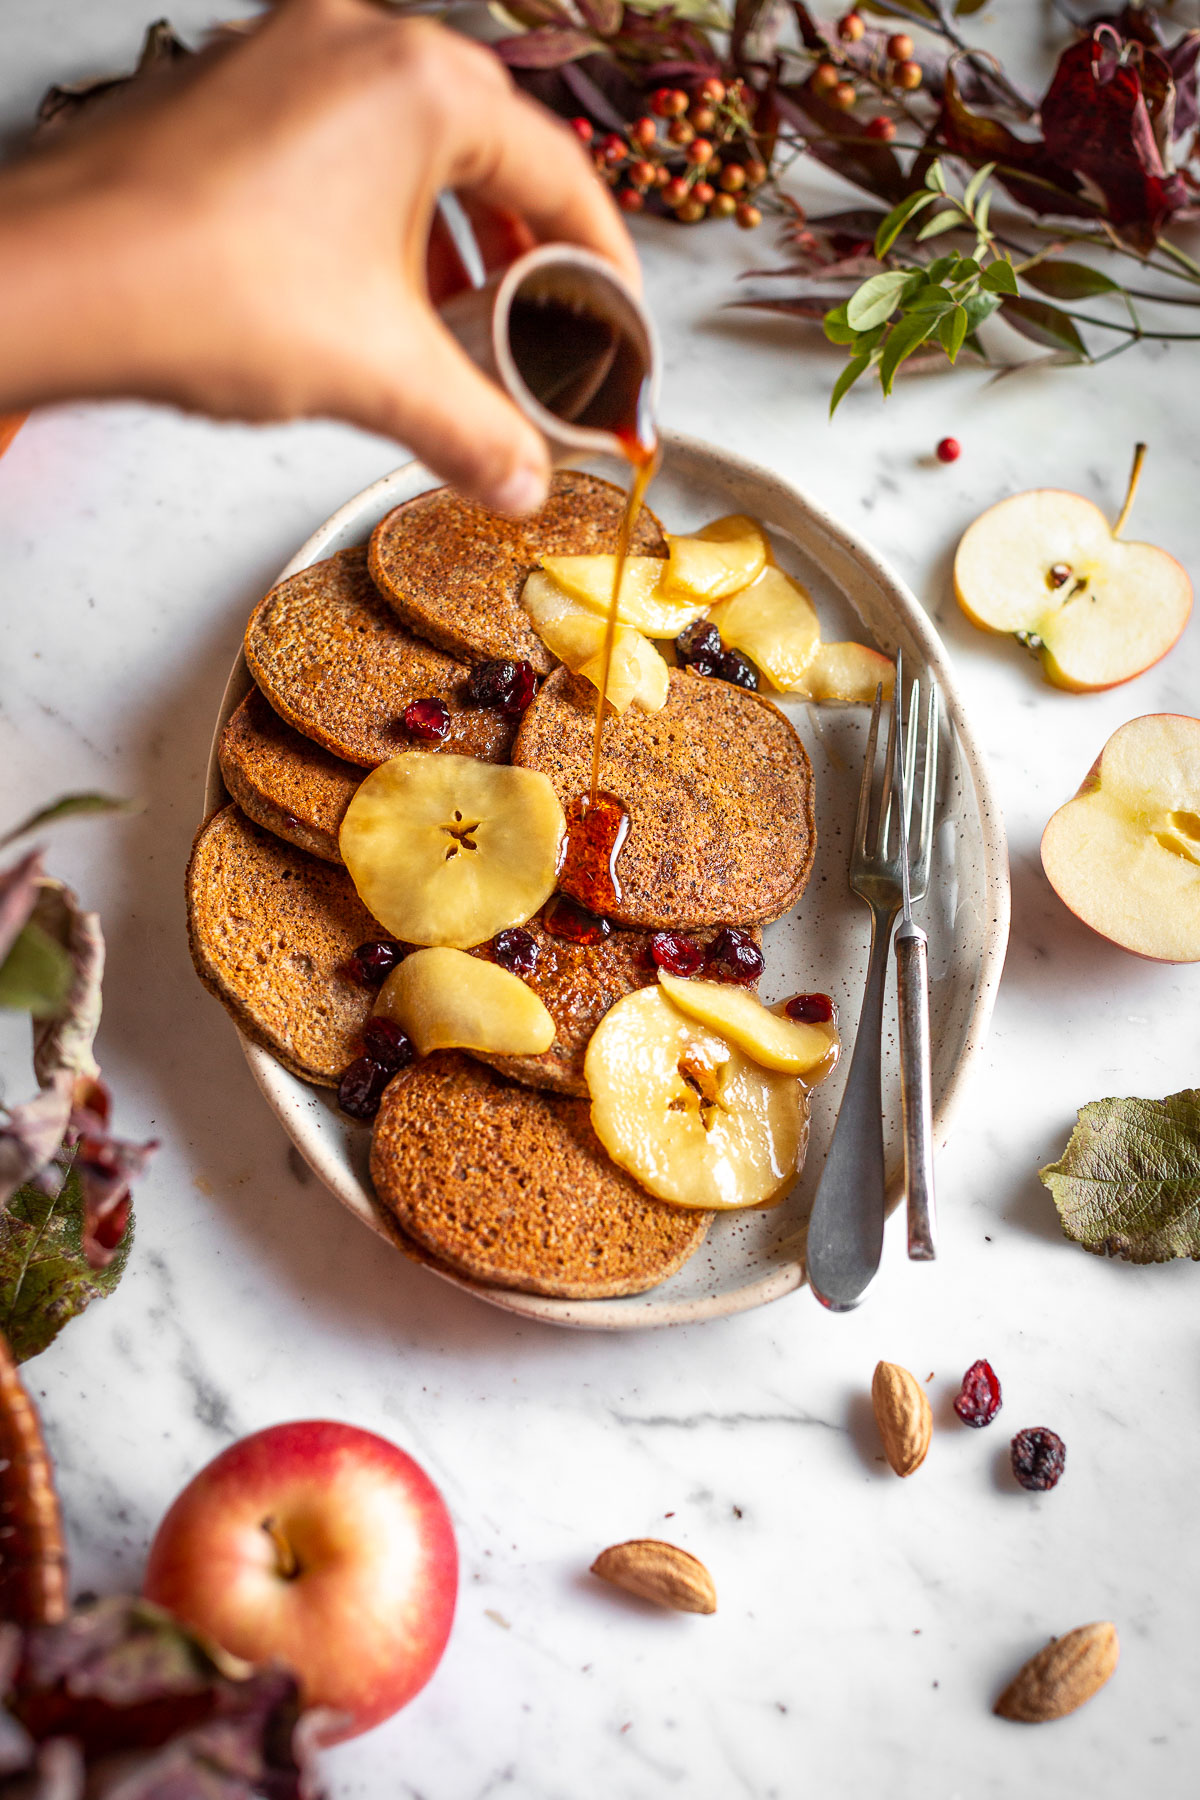 VEGAN APPLE BUCKWHEAT PANCAKES gluten-free recipe with caramelized apples and cranberries ricetta PANCAKES VEGAN di GRANO SARACENO e MELE SENZA GLUTINE con mele caramellate